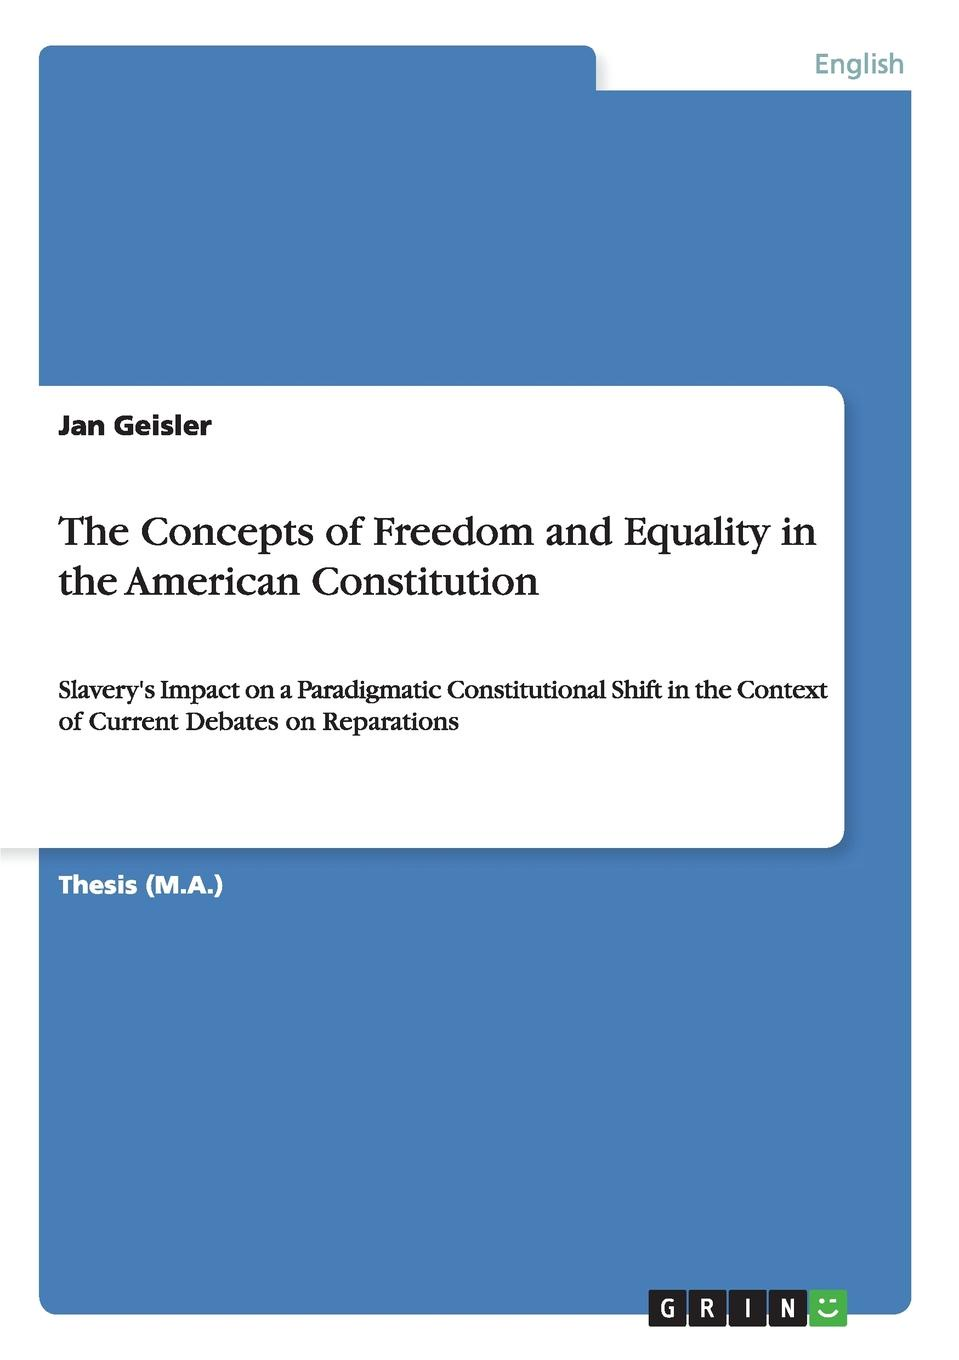 Jan Geisler The Concepts of Freedom and Equality in the American Constitution ruzhdi kicmari kurze analyse des zusammenhangs zwischen freiheit und gleichheit